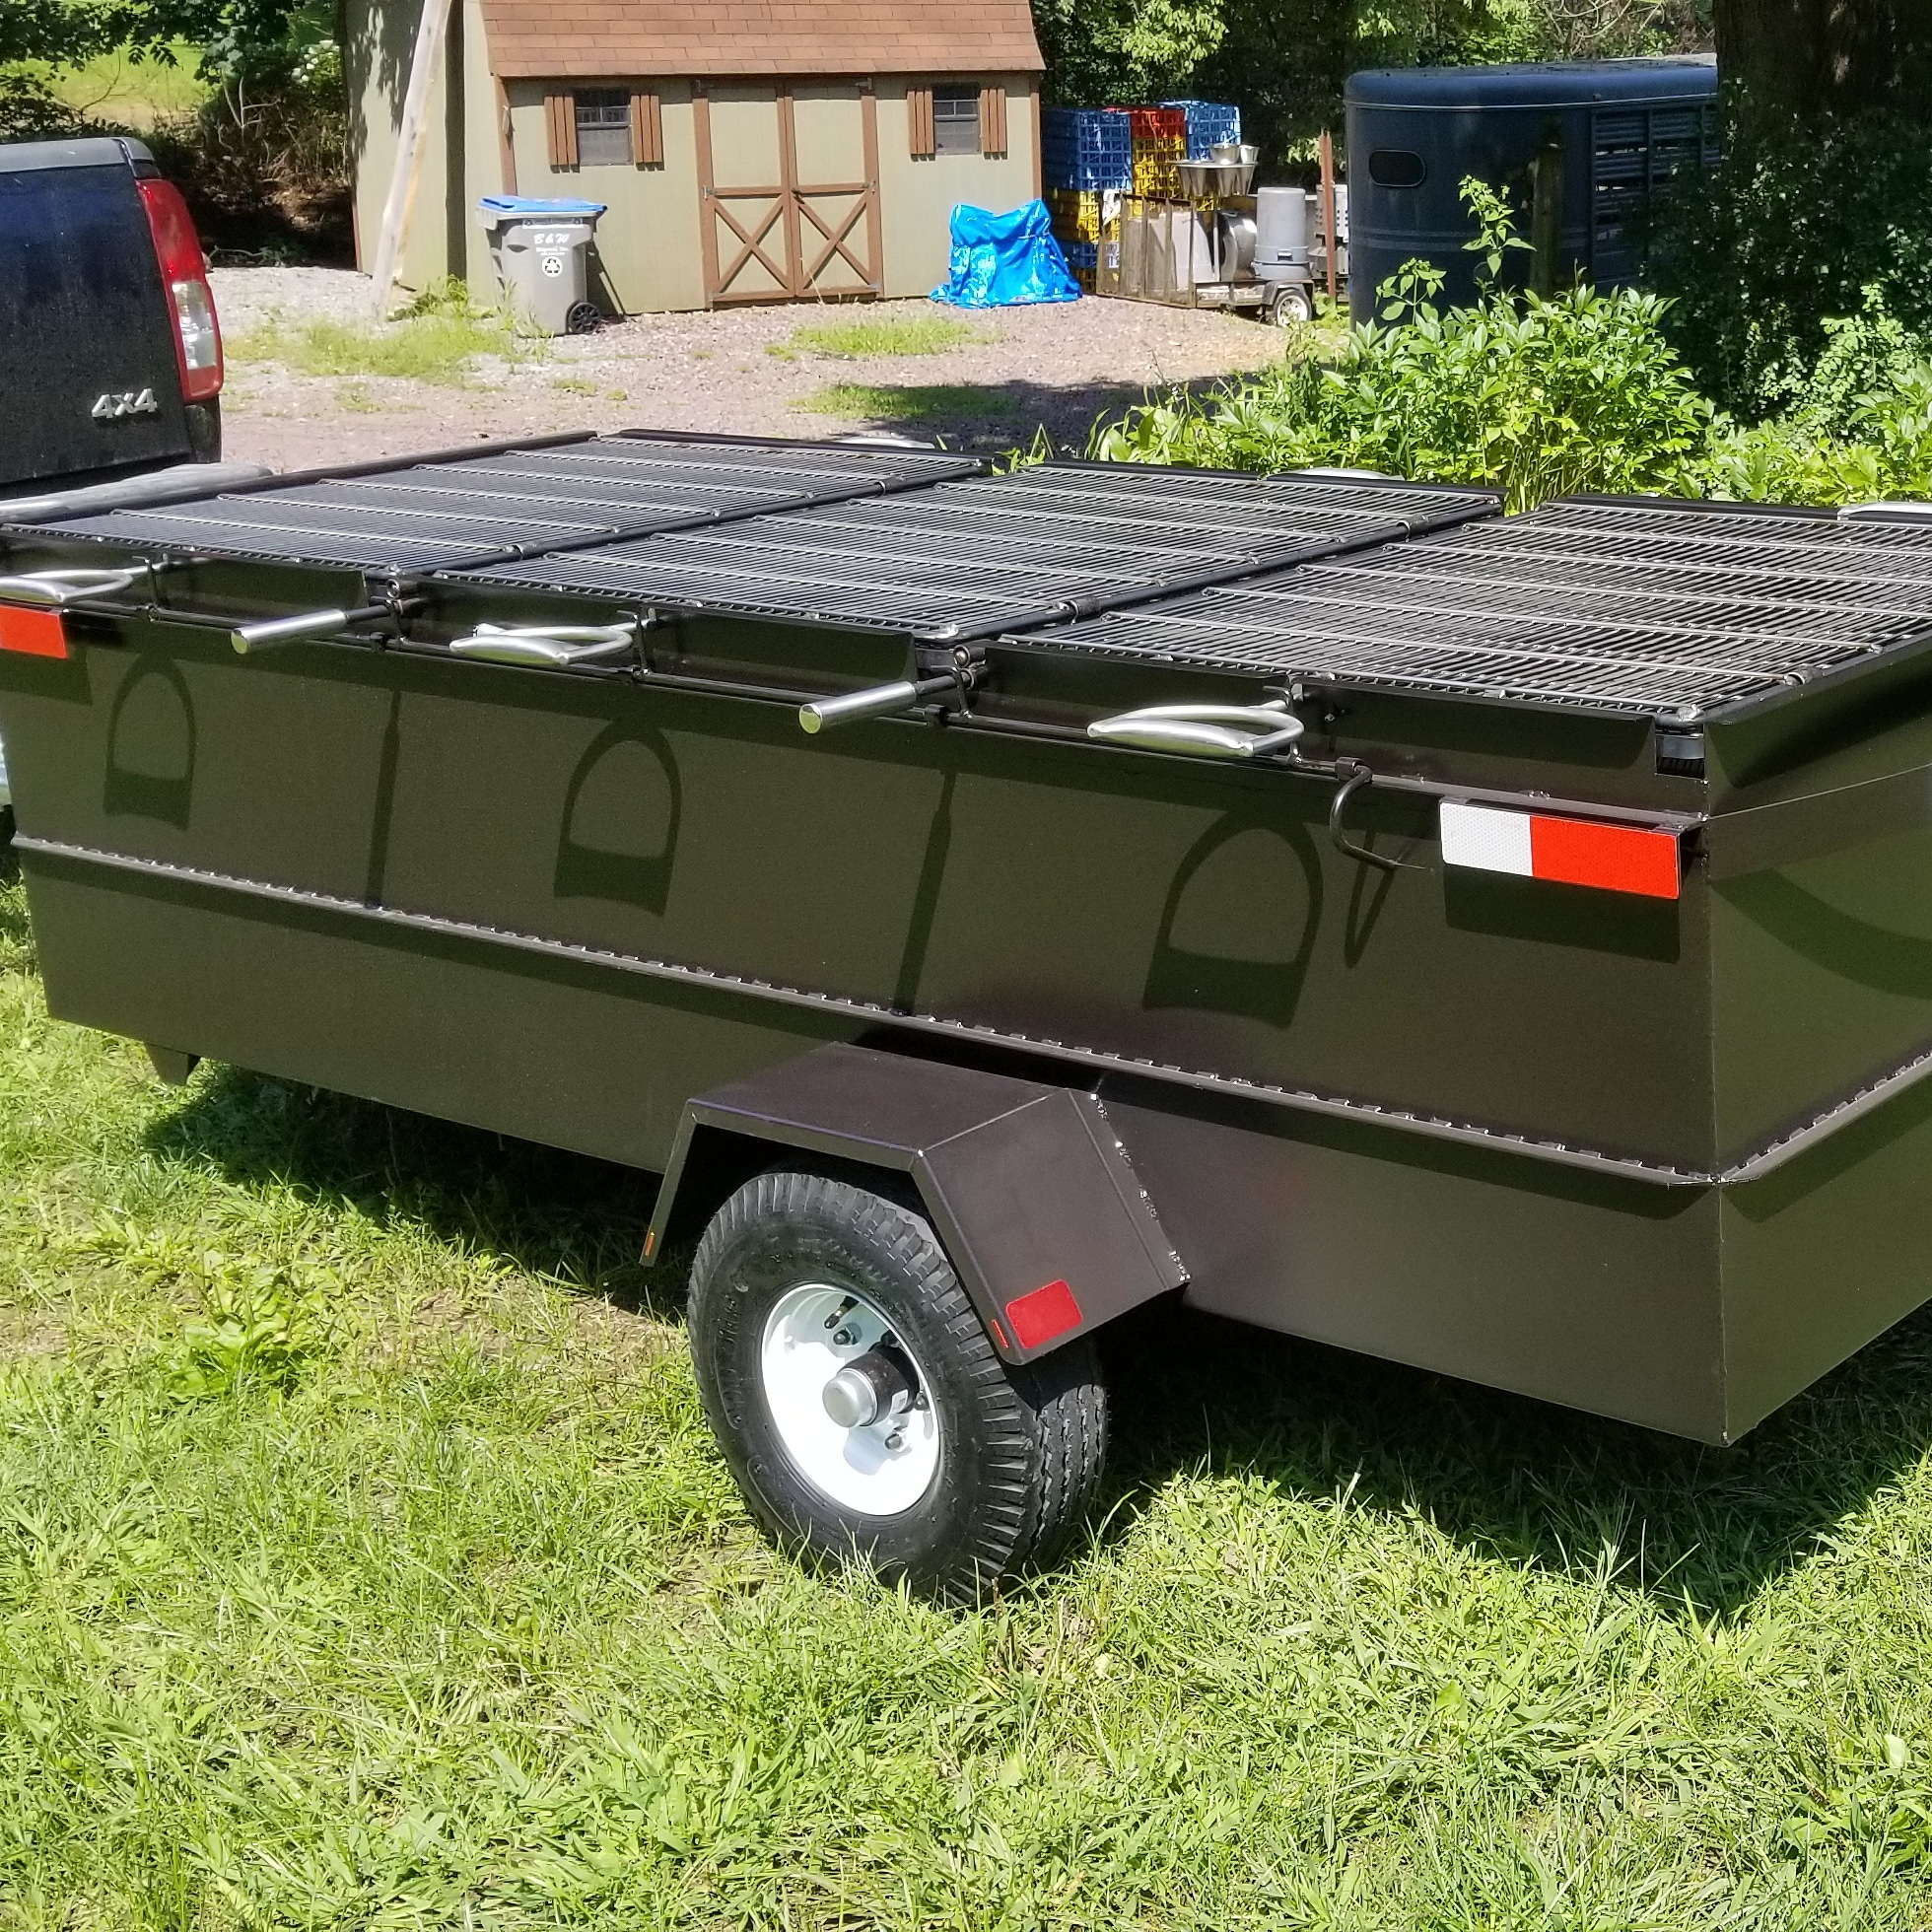 Charcoal Chicken Grill with Wheels and Hitch